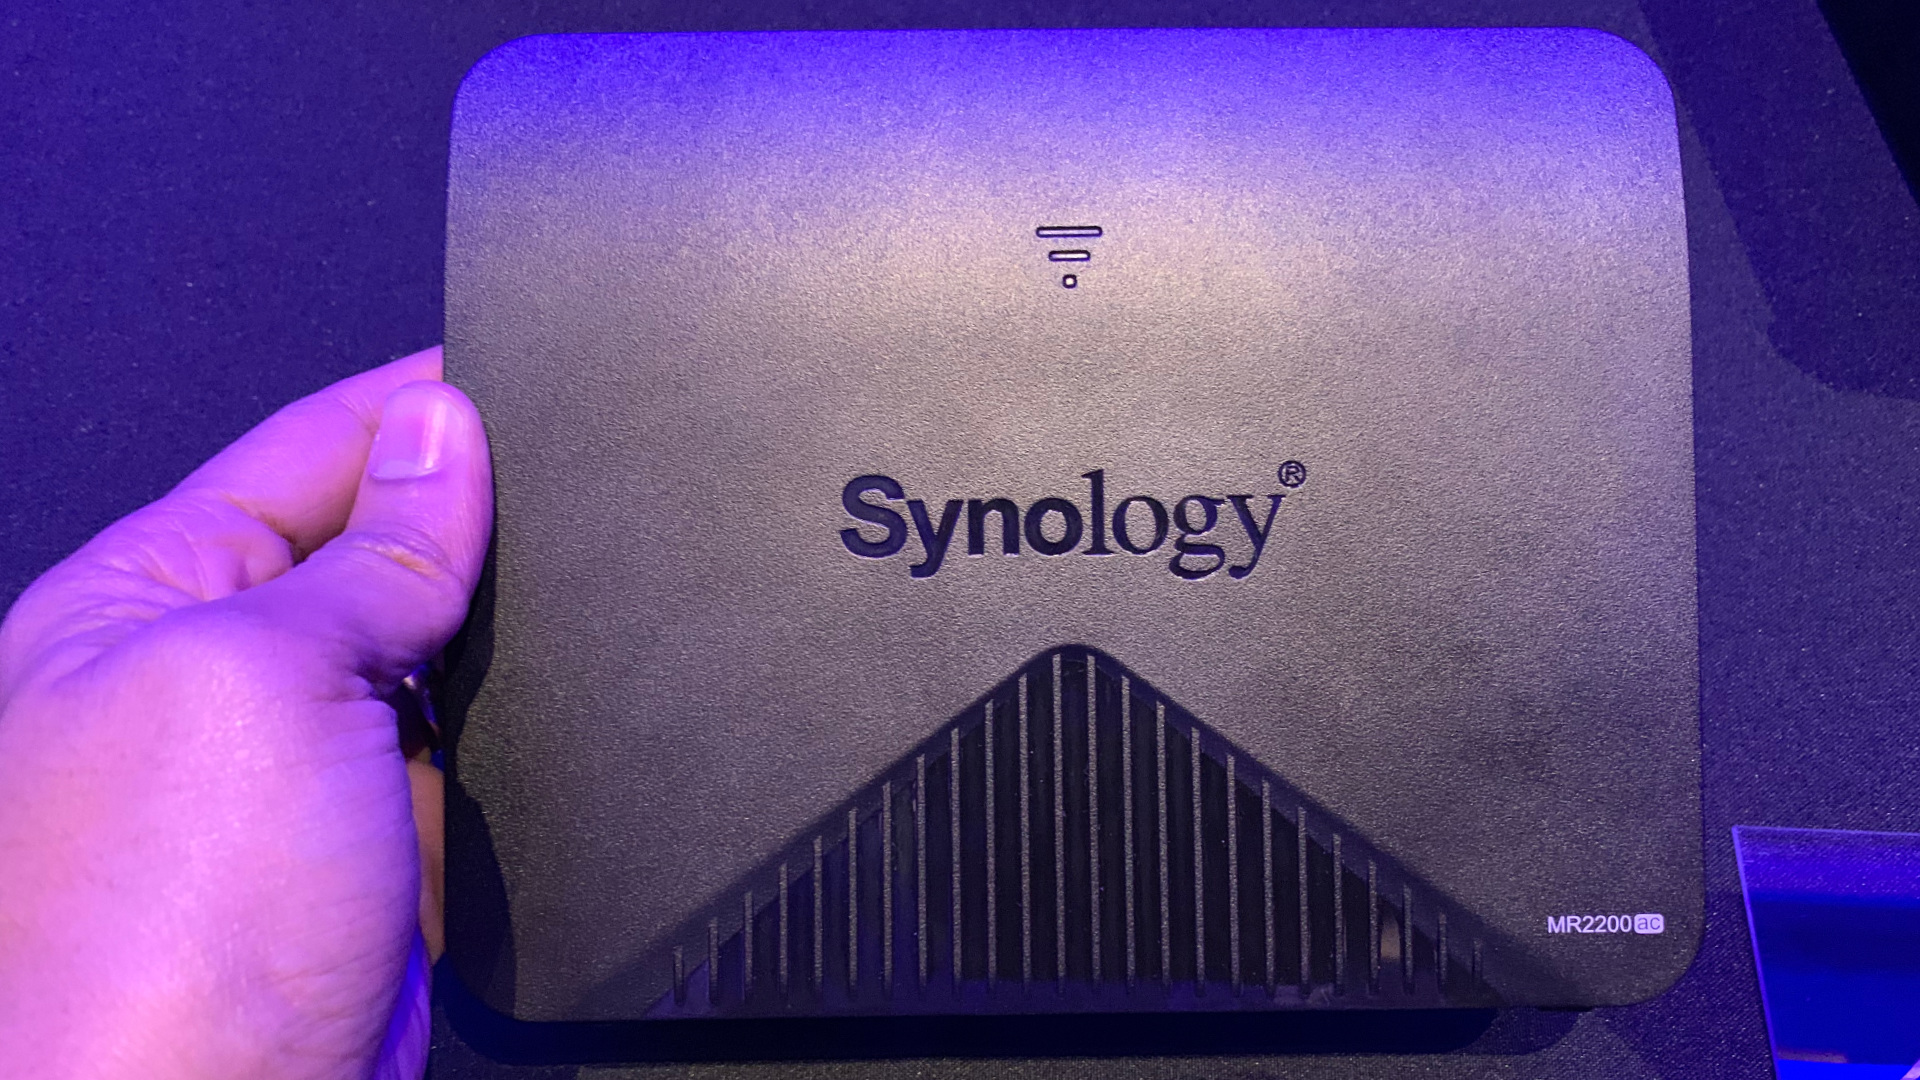 Synology unveils new $140 MR2200ac mesh router with quad-core CPU